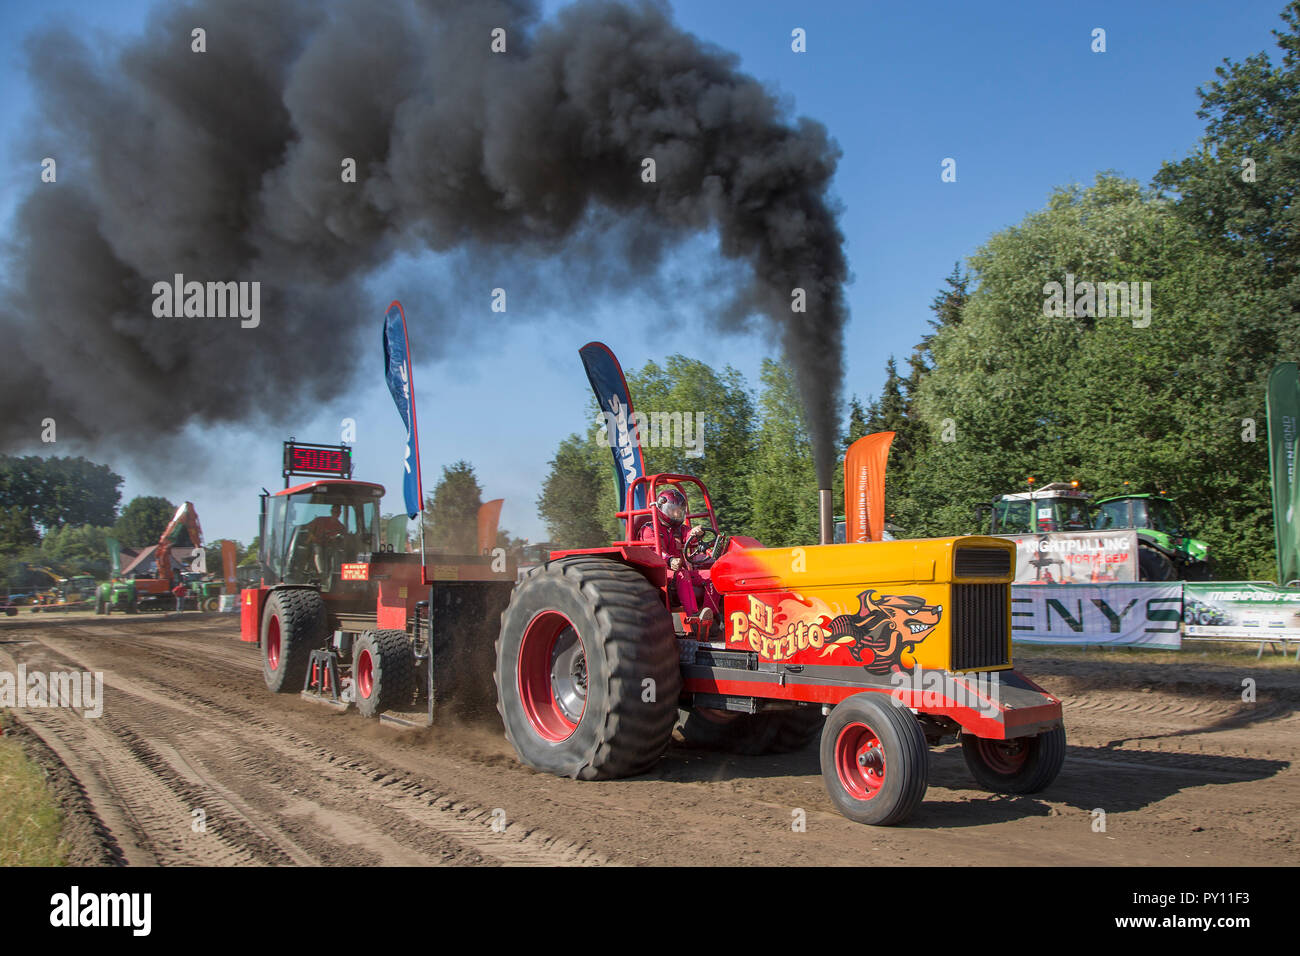 Tractor Pulling Stock Photos Tractor Pulling Stock Images Alamy